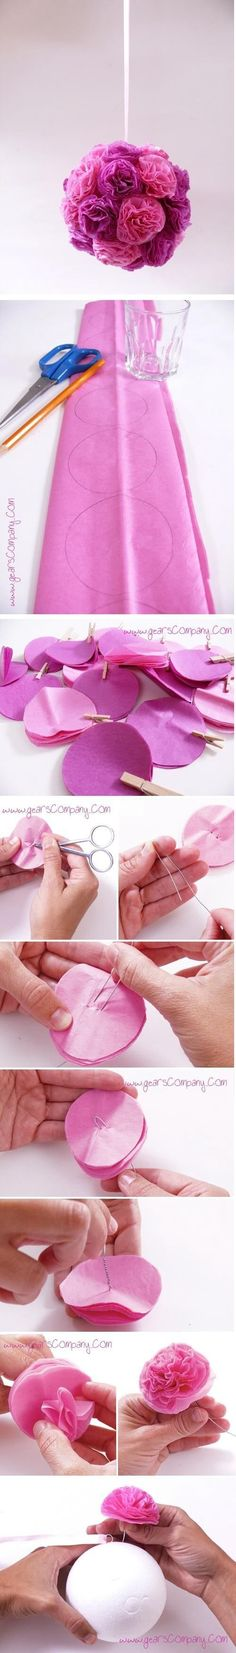 DIY girly theme party